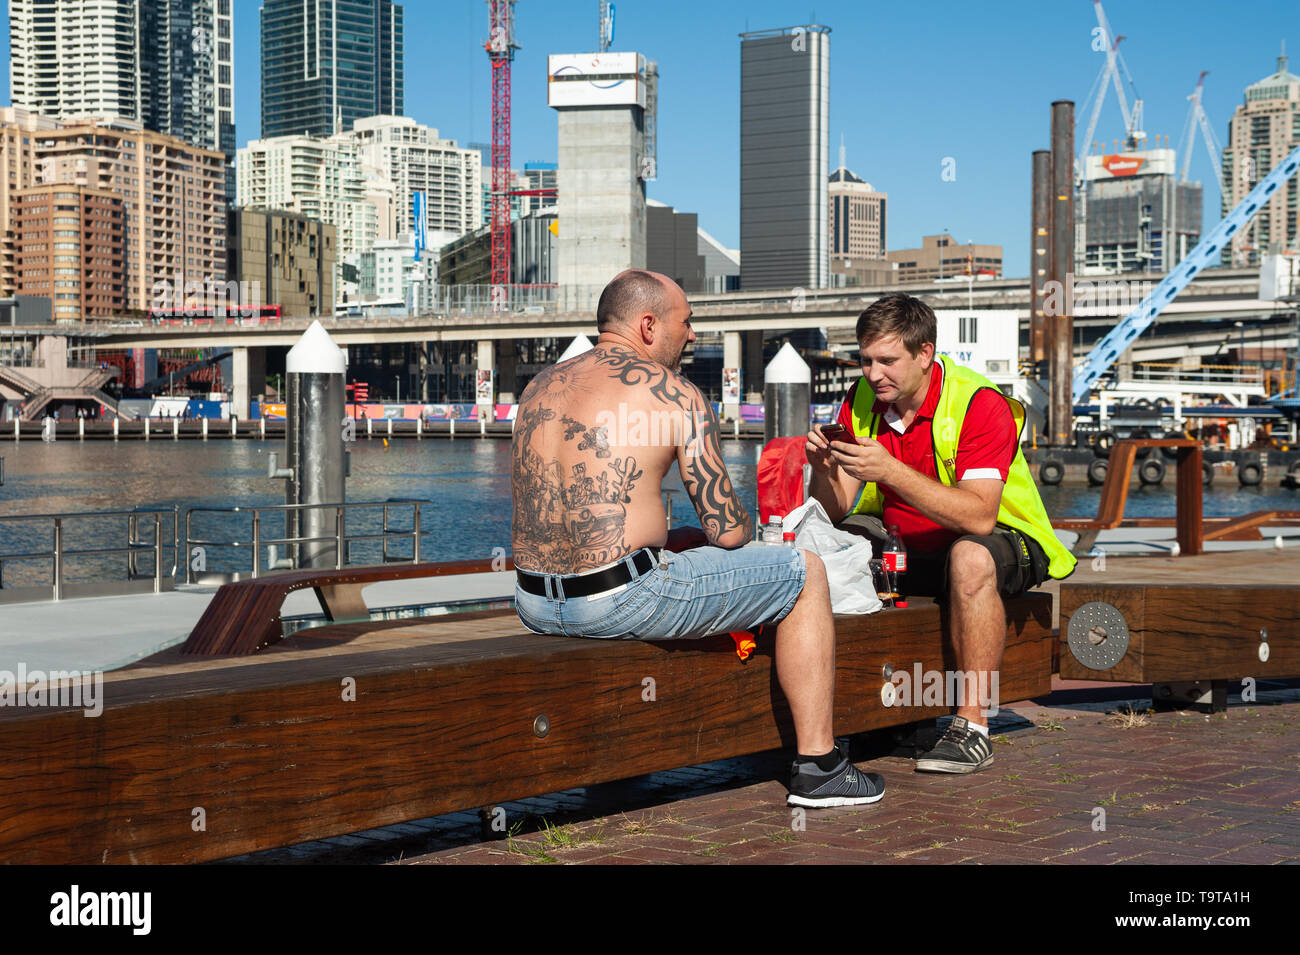 07.05.2018, Sydney, New South Wales, Australia - Two workers are taking their lunch break in Darling Harbour with the city skyline of the central busi - Stock Image